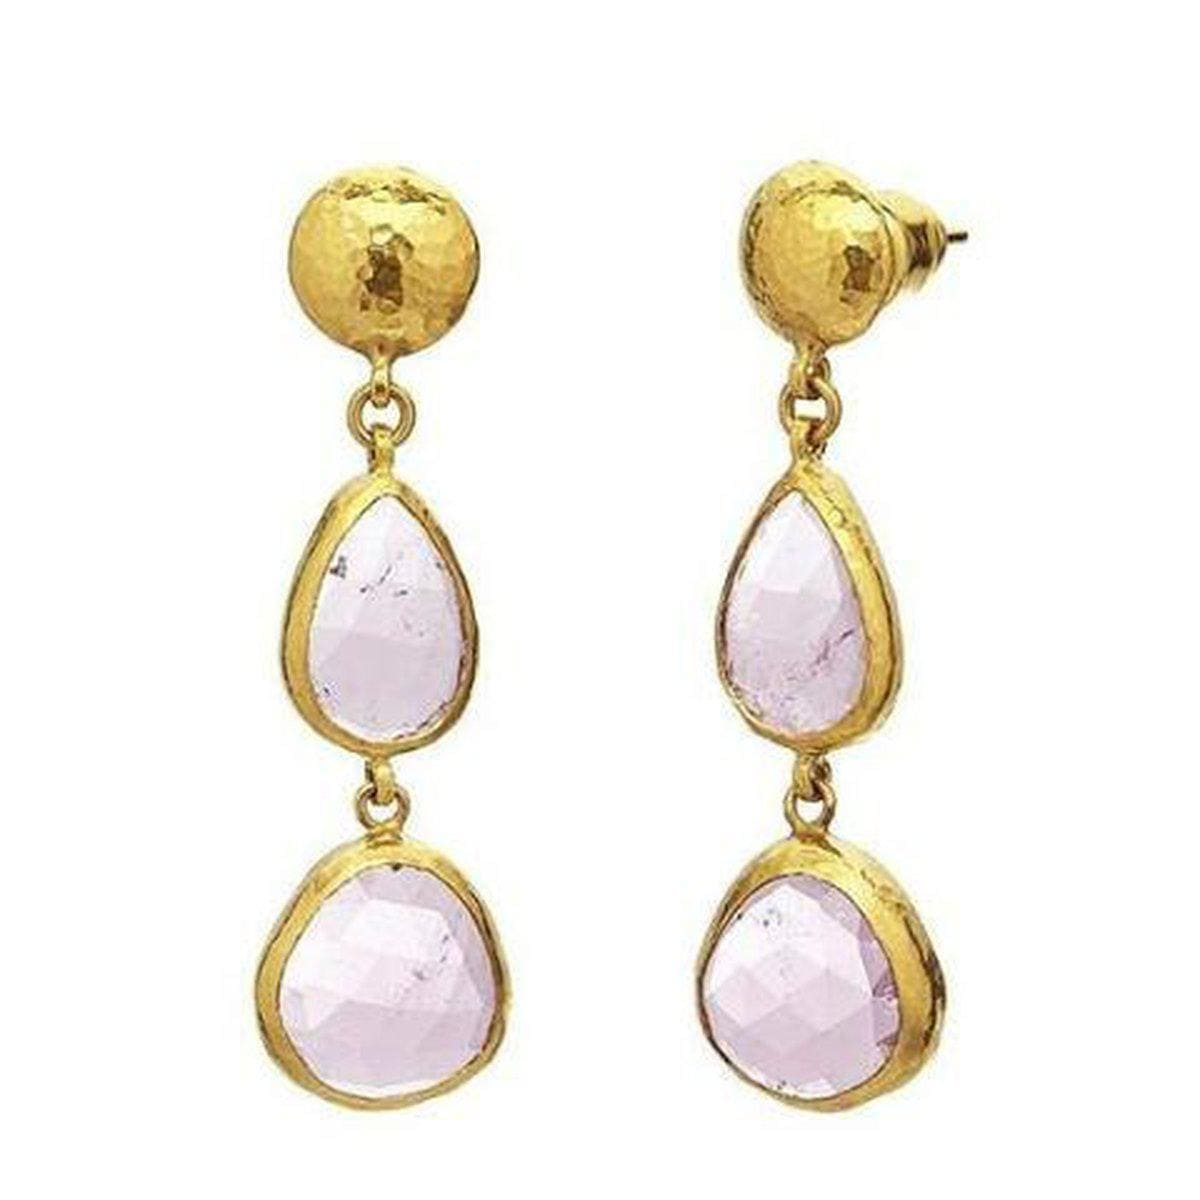 Elements 24K Gold Pink Tourmaline Earrings - E-U24144-PT-GURHAN-Renee Taylor Gallery